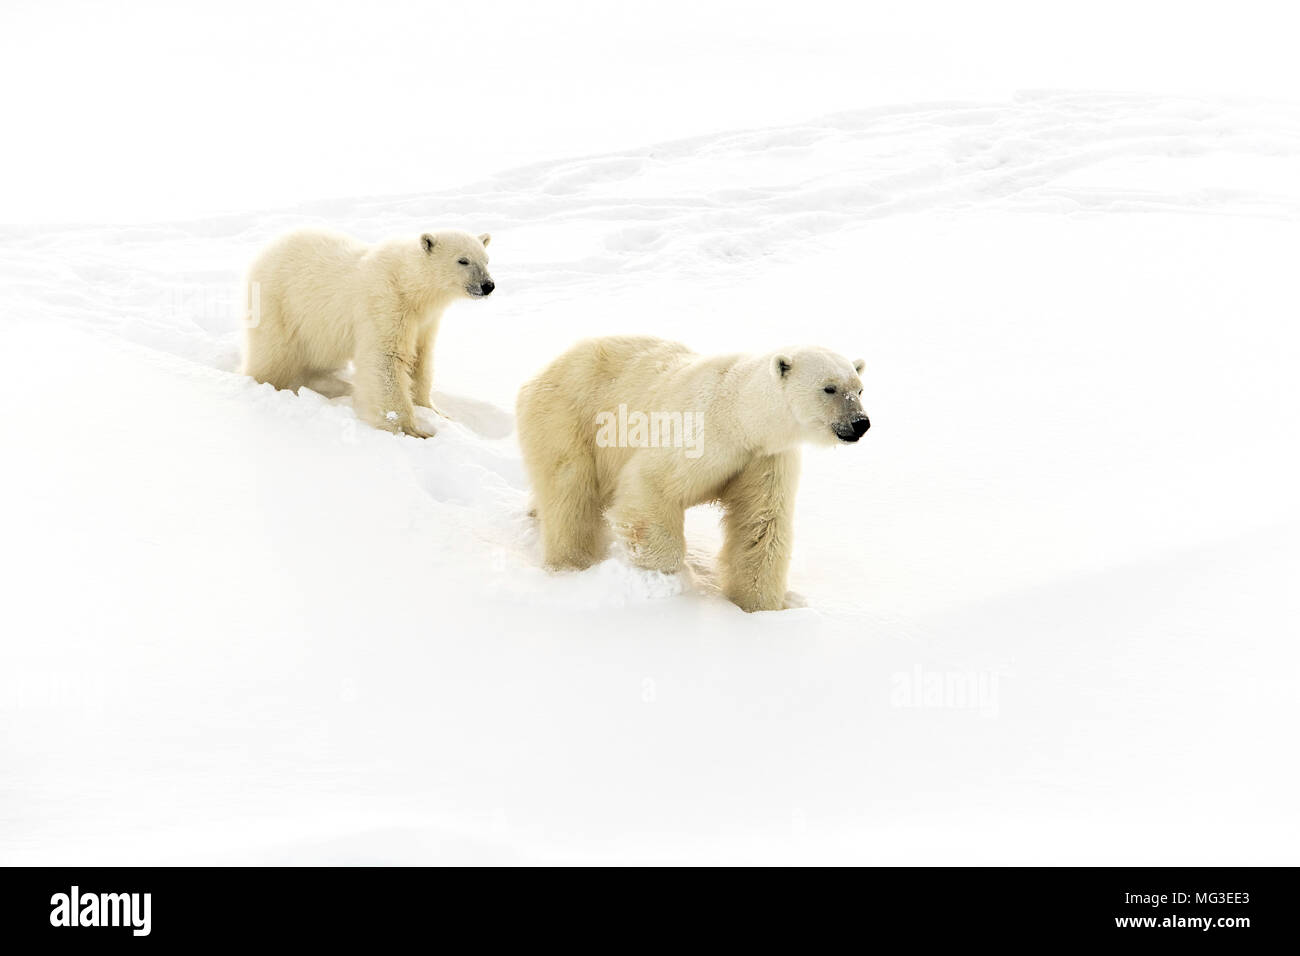 Mother polar bear and a yearling cub walking on an iceberg, Baffin Island, Canada, nunavut, arctic - Stock Image